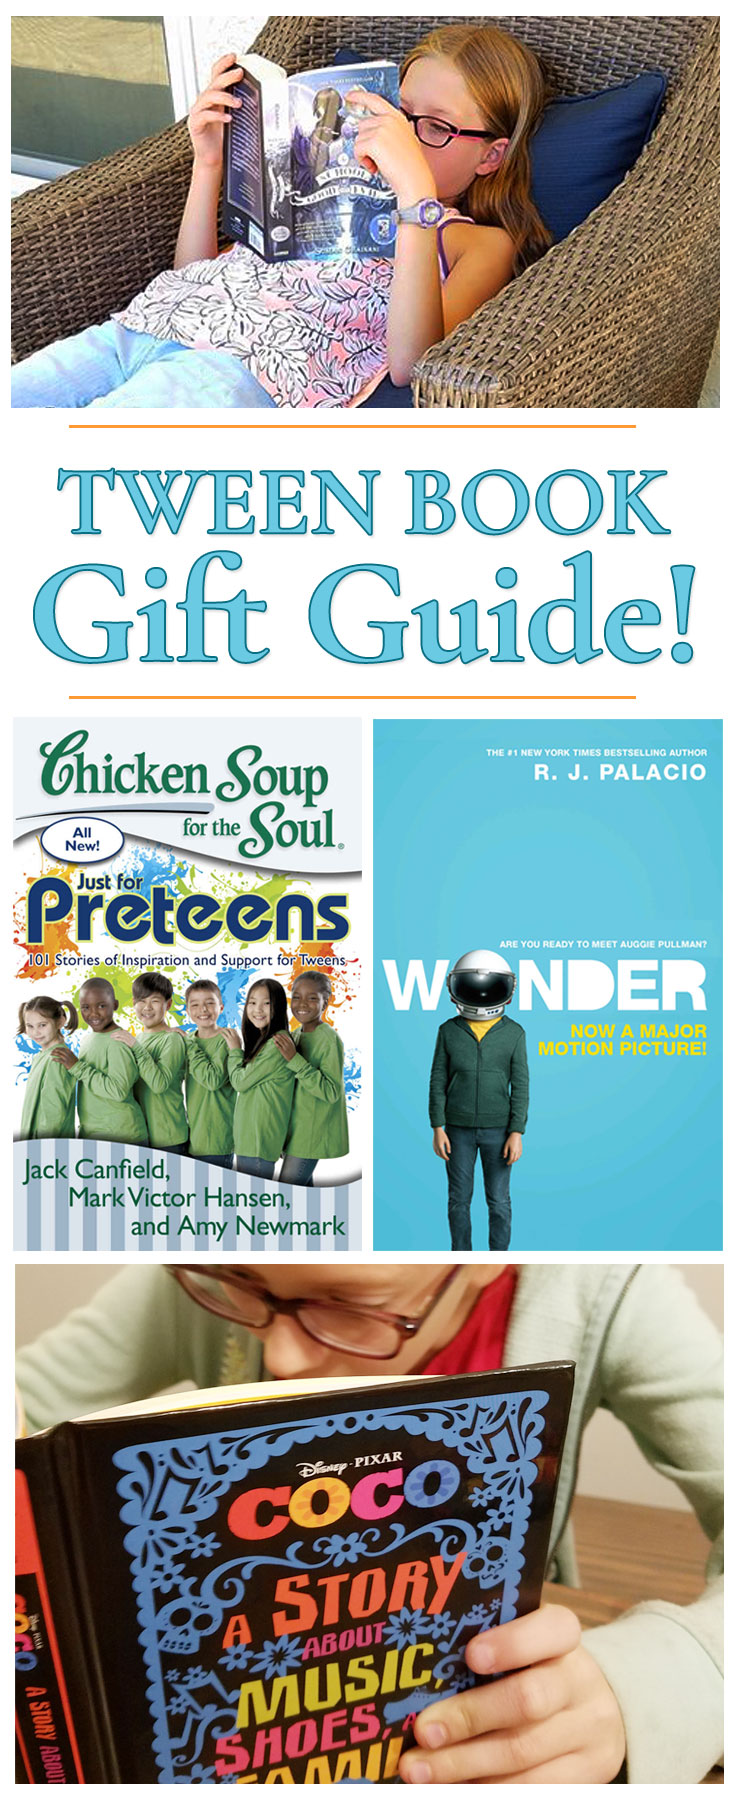 tween book gift guide